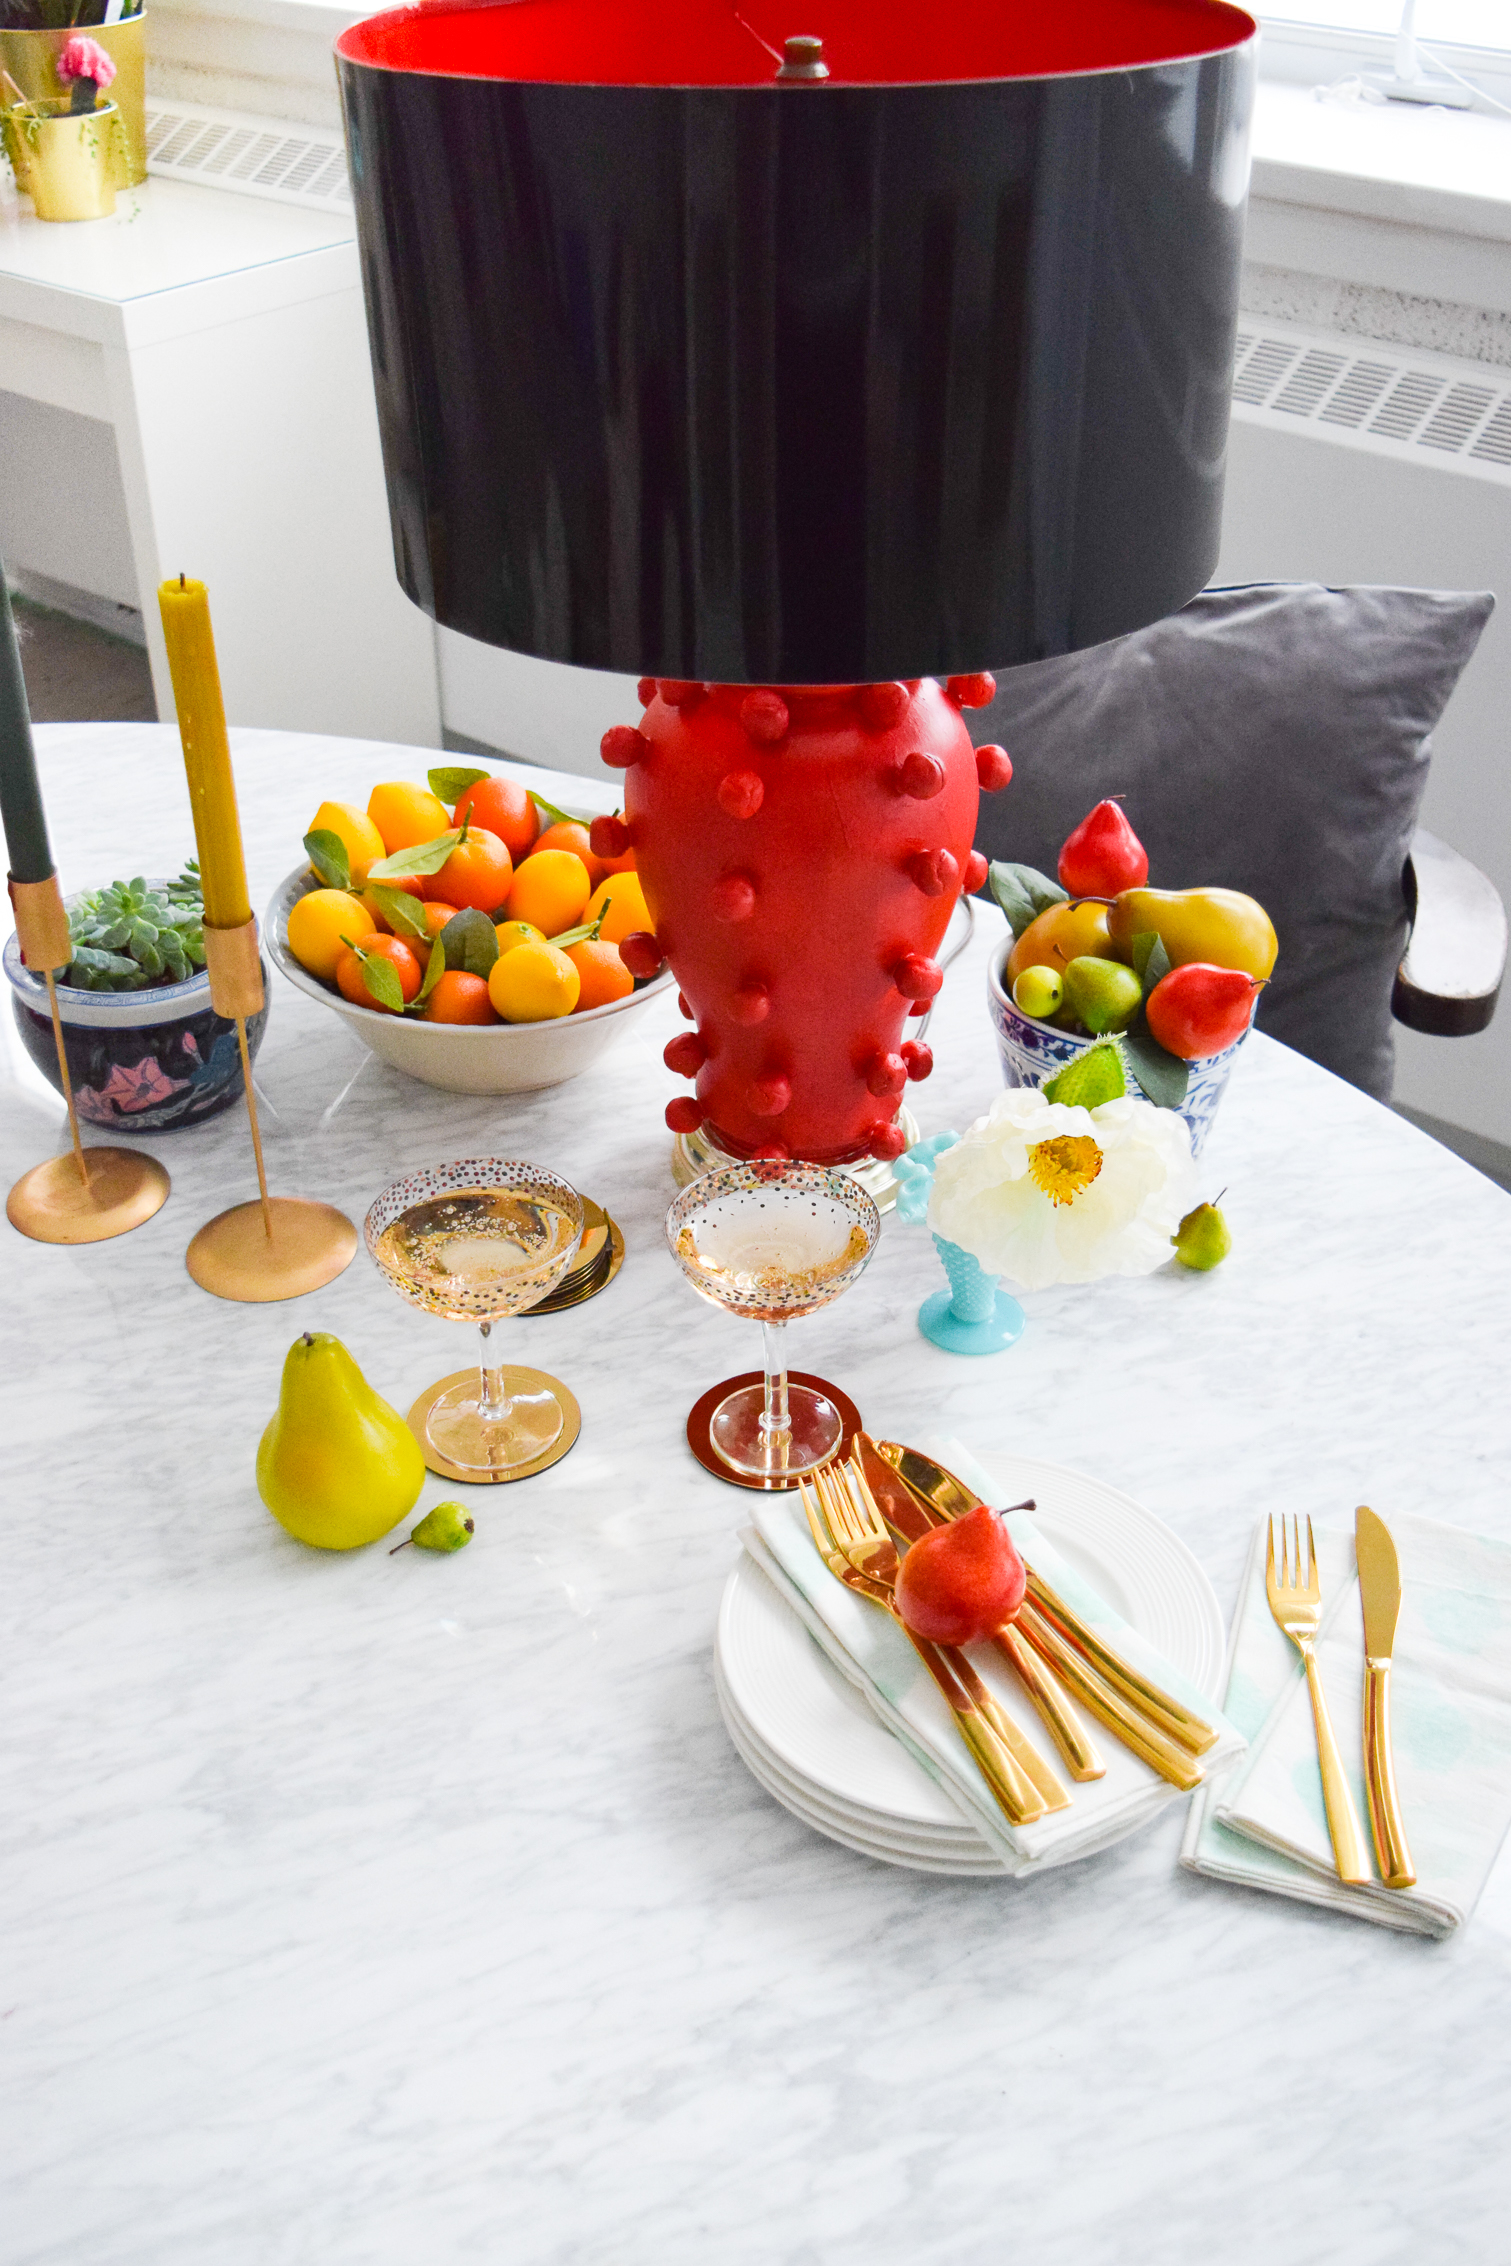 Bring some drama to your lighting situation with this DIY Kelly Wearstler Lamp. Upcycle an old lamp with air dry clay, and make one to amp up your decor. You can make it in any colour you want as long you've got the paint!